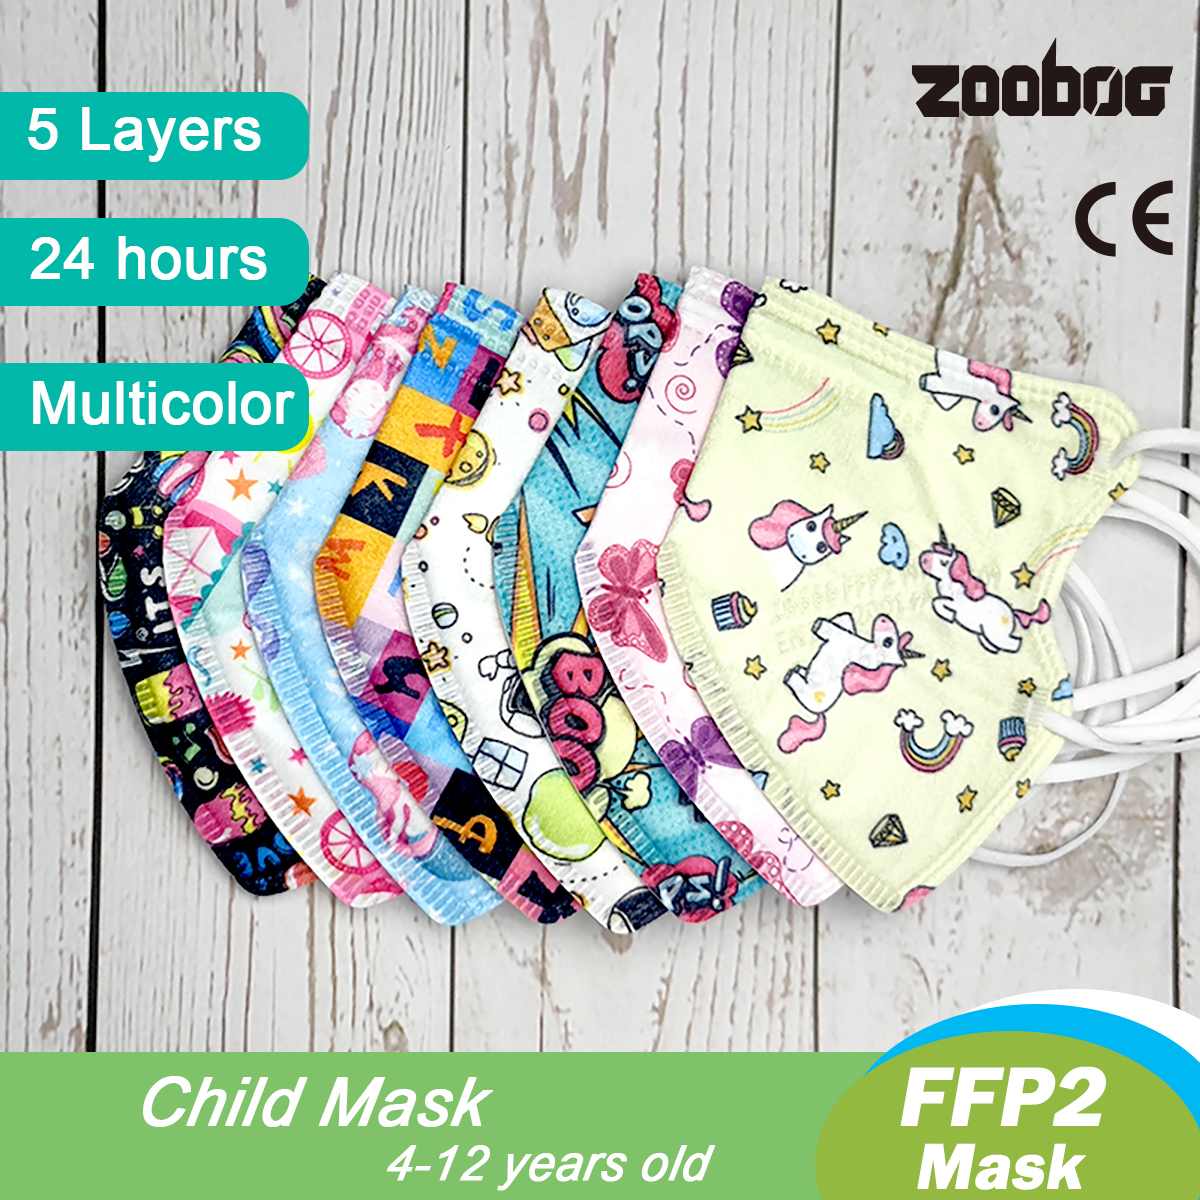 Zooboo ffp2 children Kids KN95 Mask   Fit 4-12 Years Mascarillas 3D Printed Cartoon kn95 Dust Mask ffp2mask  FAST Delivery